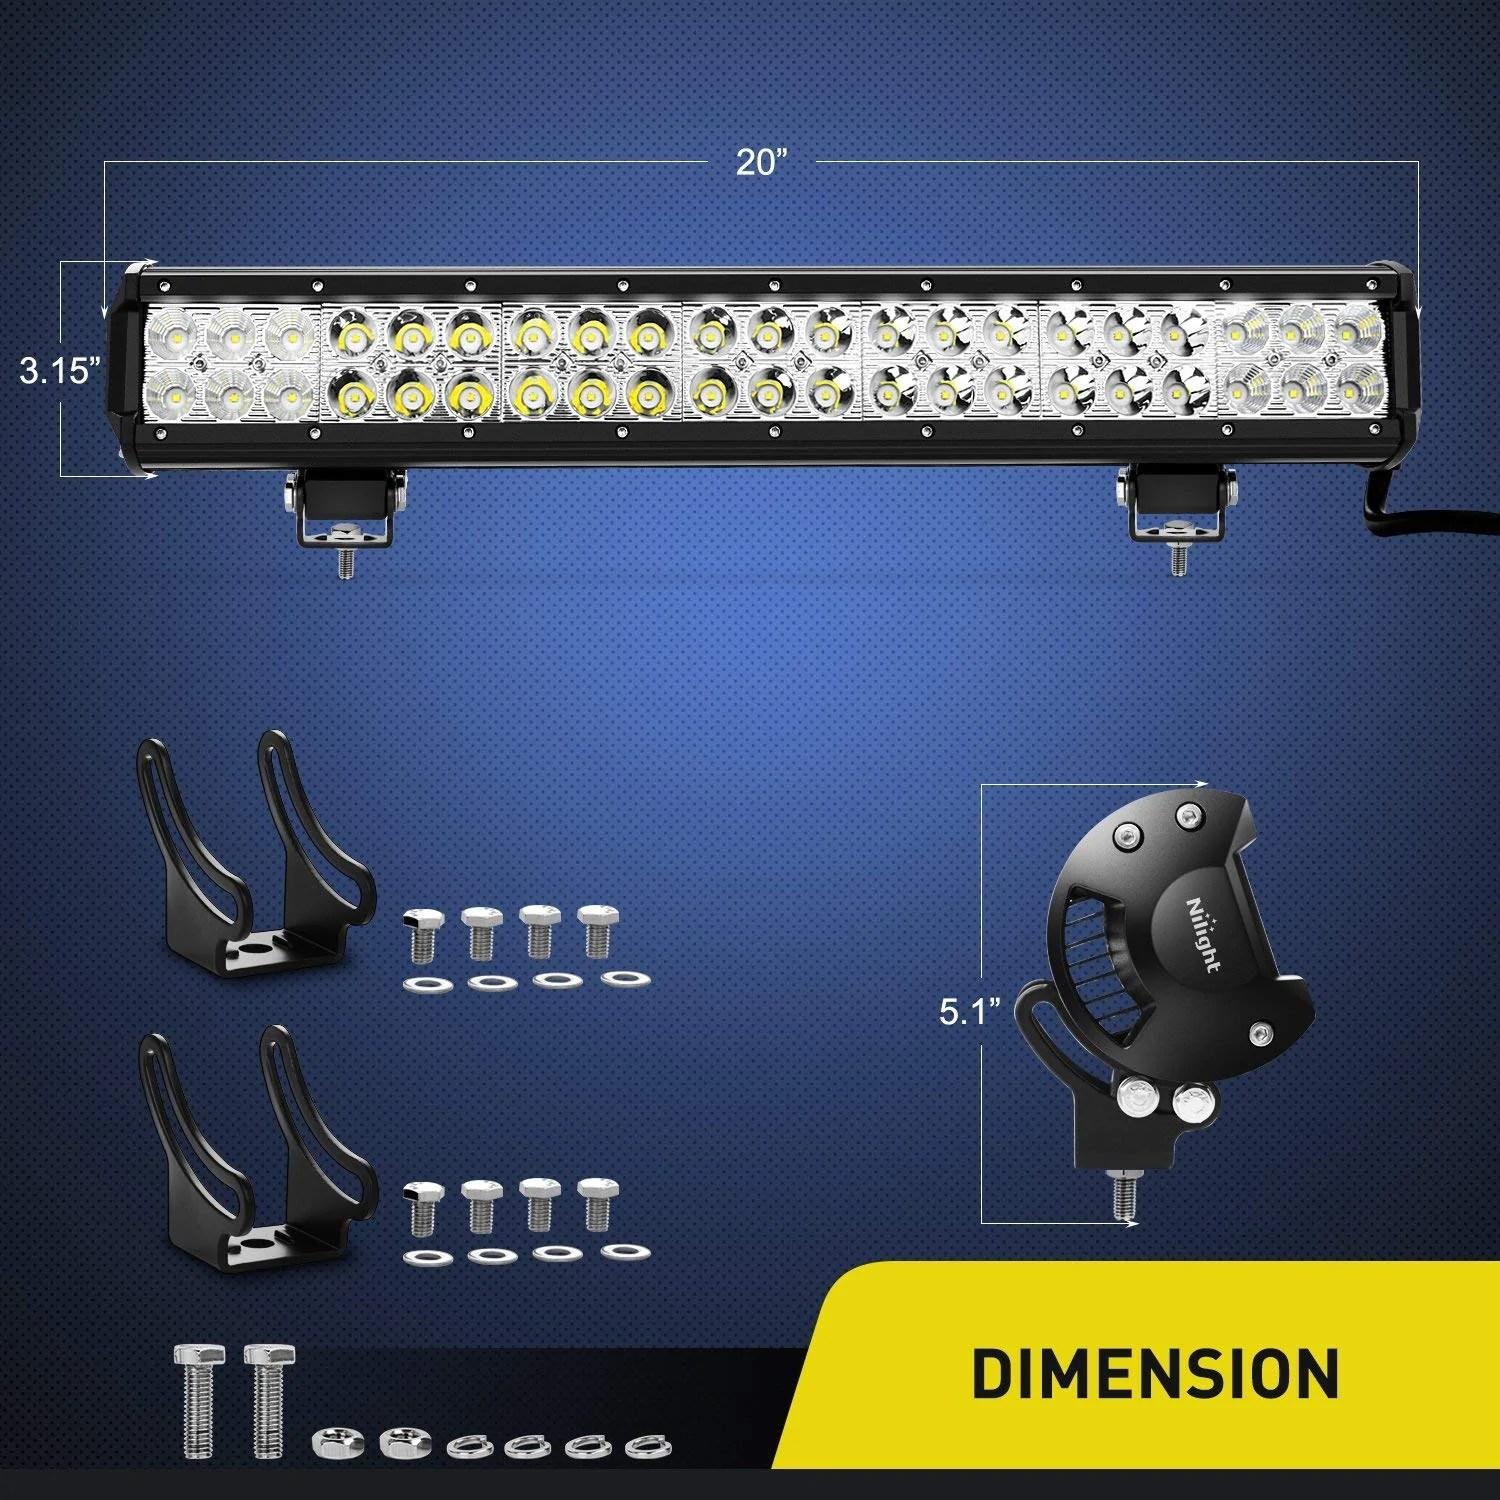 hight resolution of  23 228 watt cree led light bar and wiring harness brightsparkledco